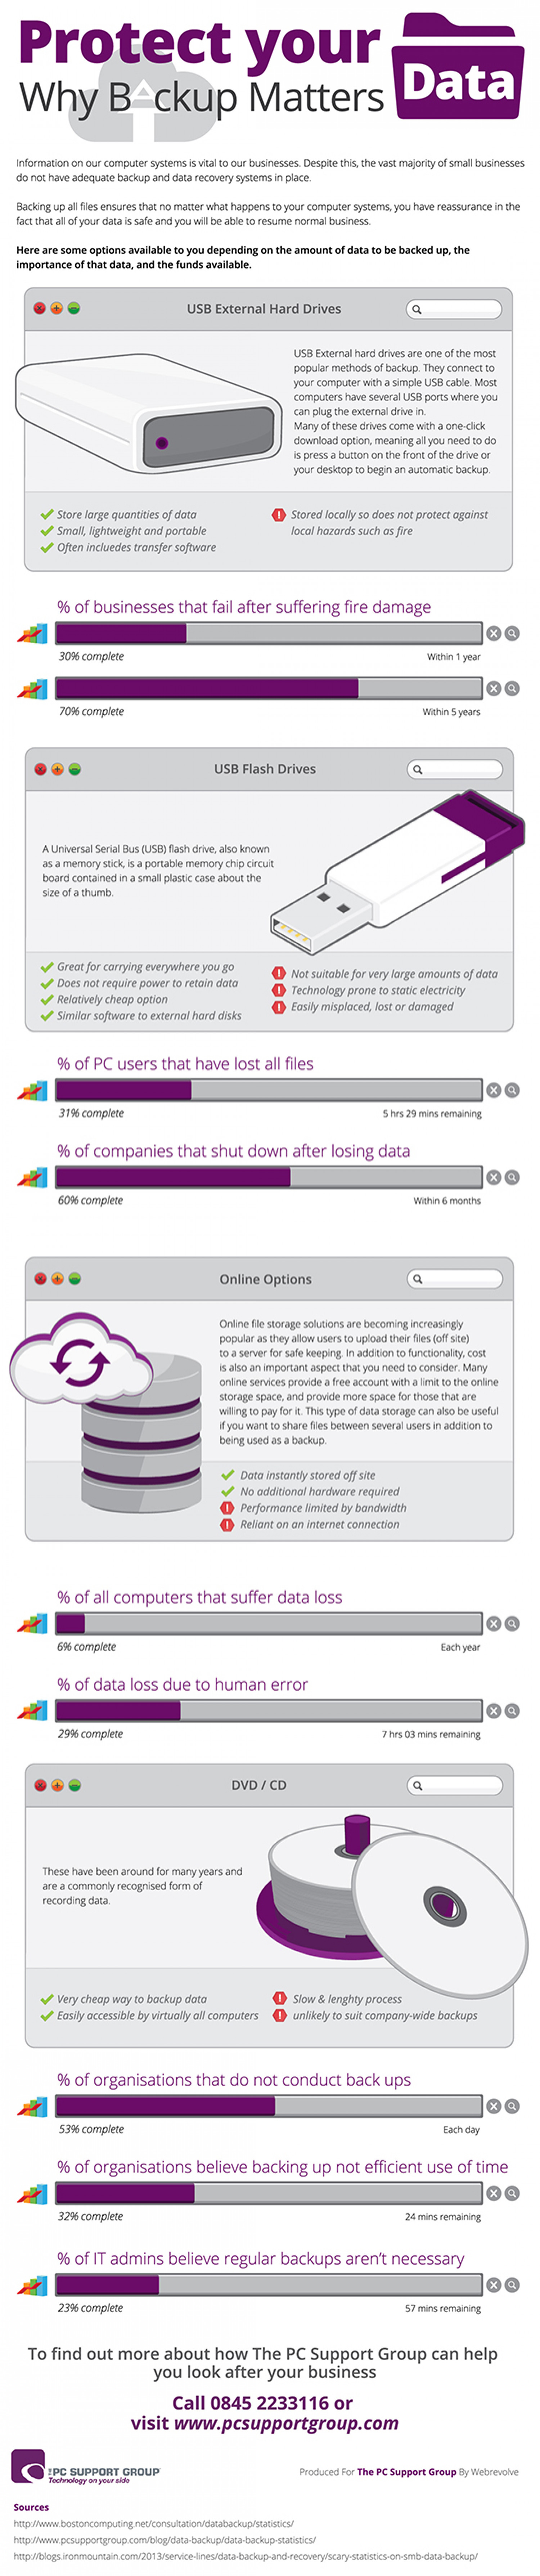 Protect Your Data: Why Backup Matters  Infographic